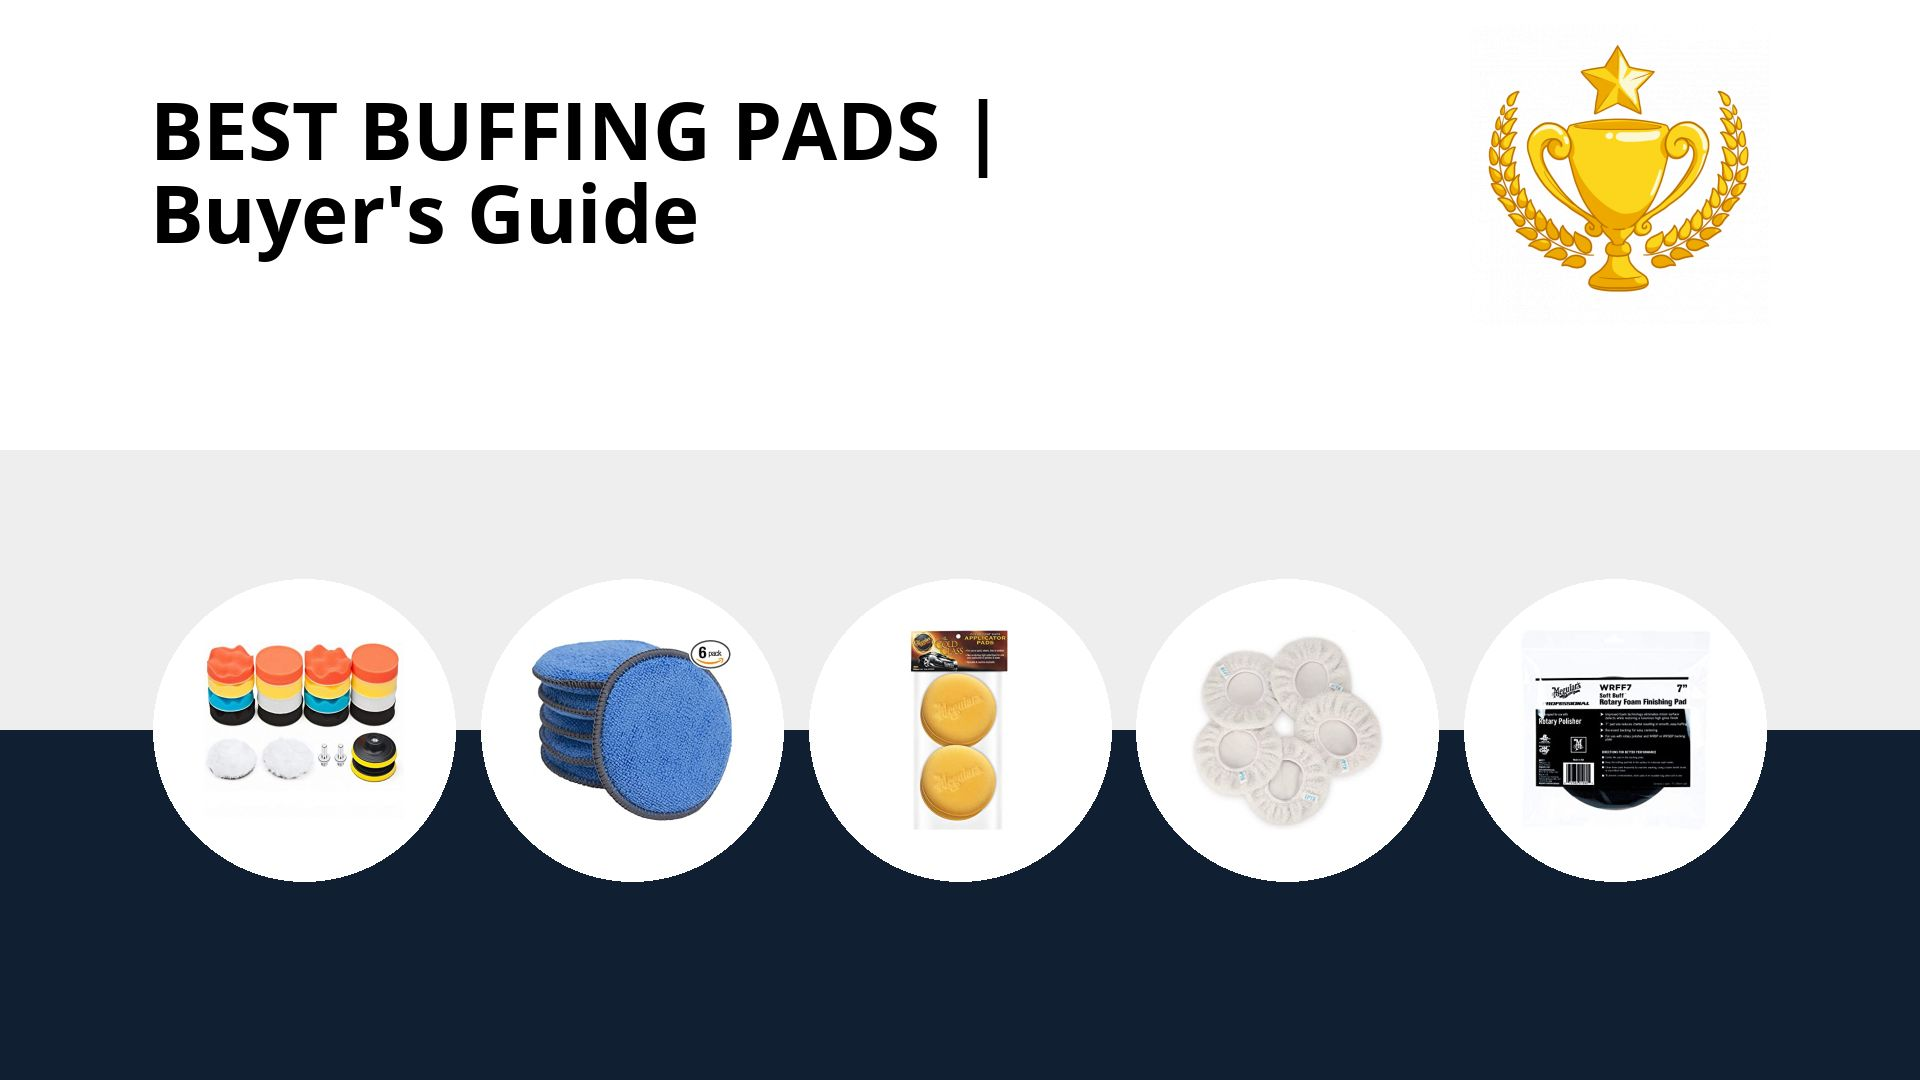 Best Buffing Pads: image